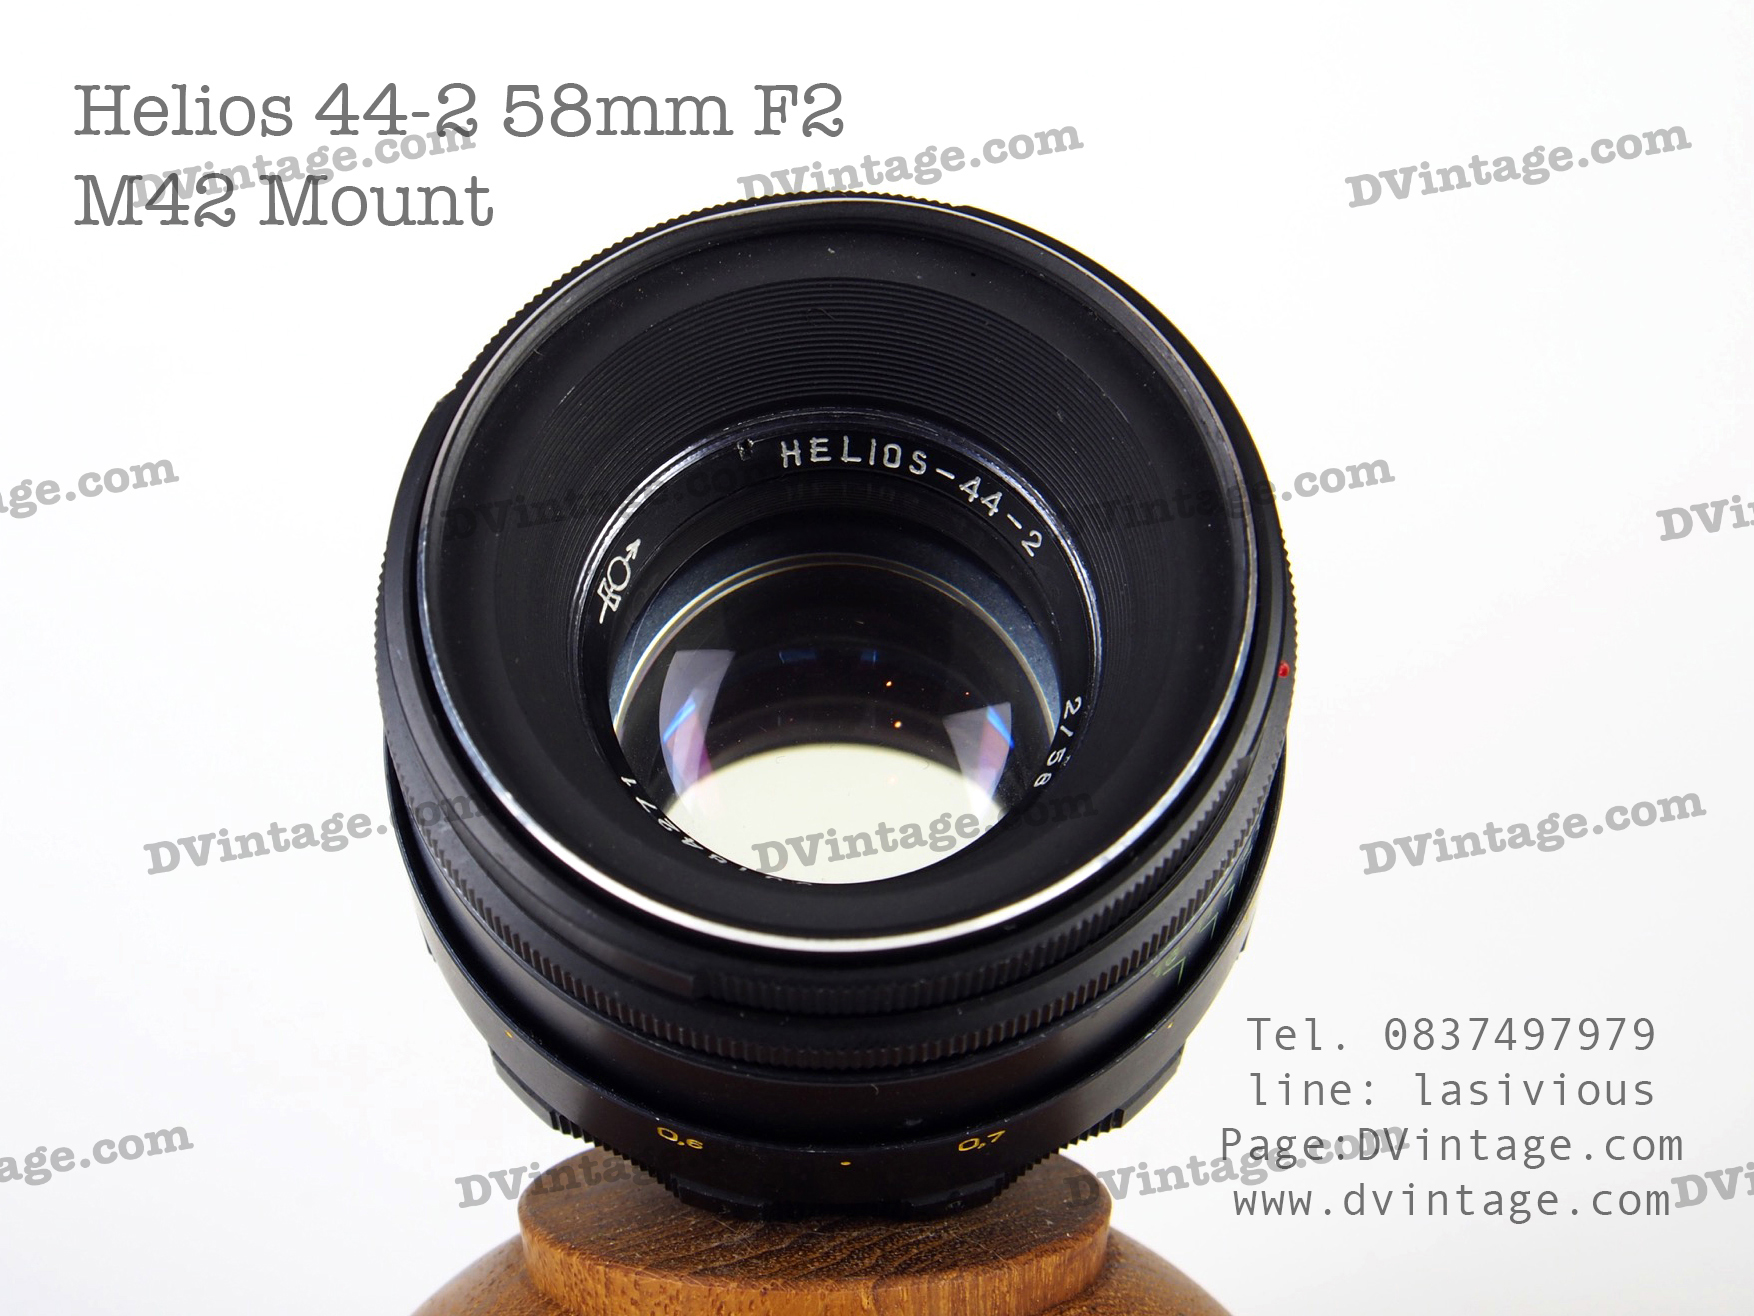 Sold Out ขายแล้วครับ เลนส์มือหมุน Helios 44-2 58mm F2 M42 Mount s/n 80184271